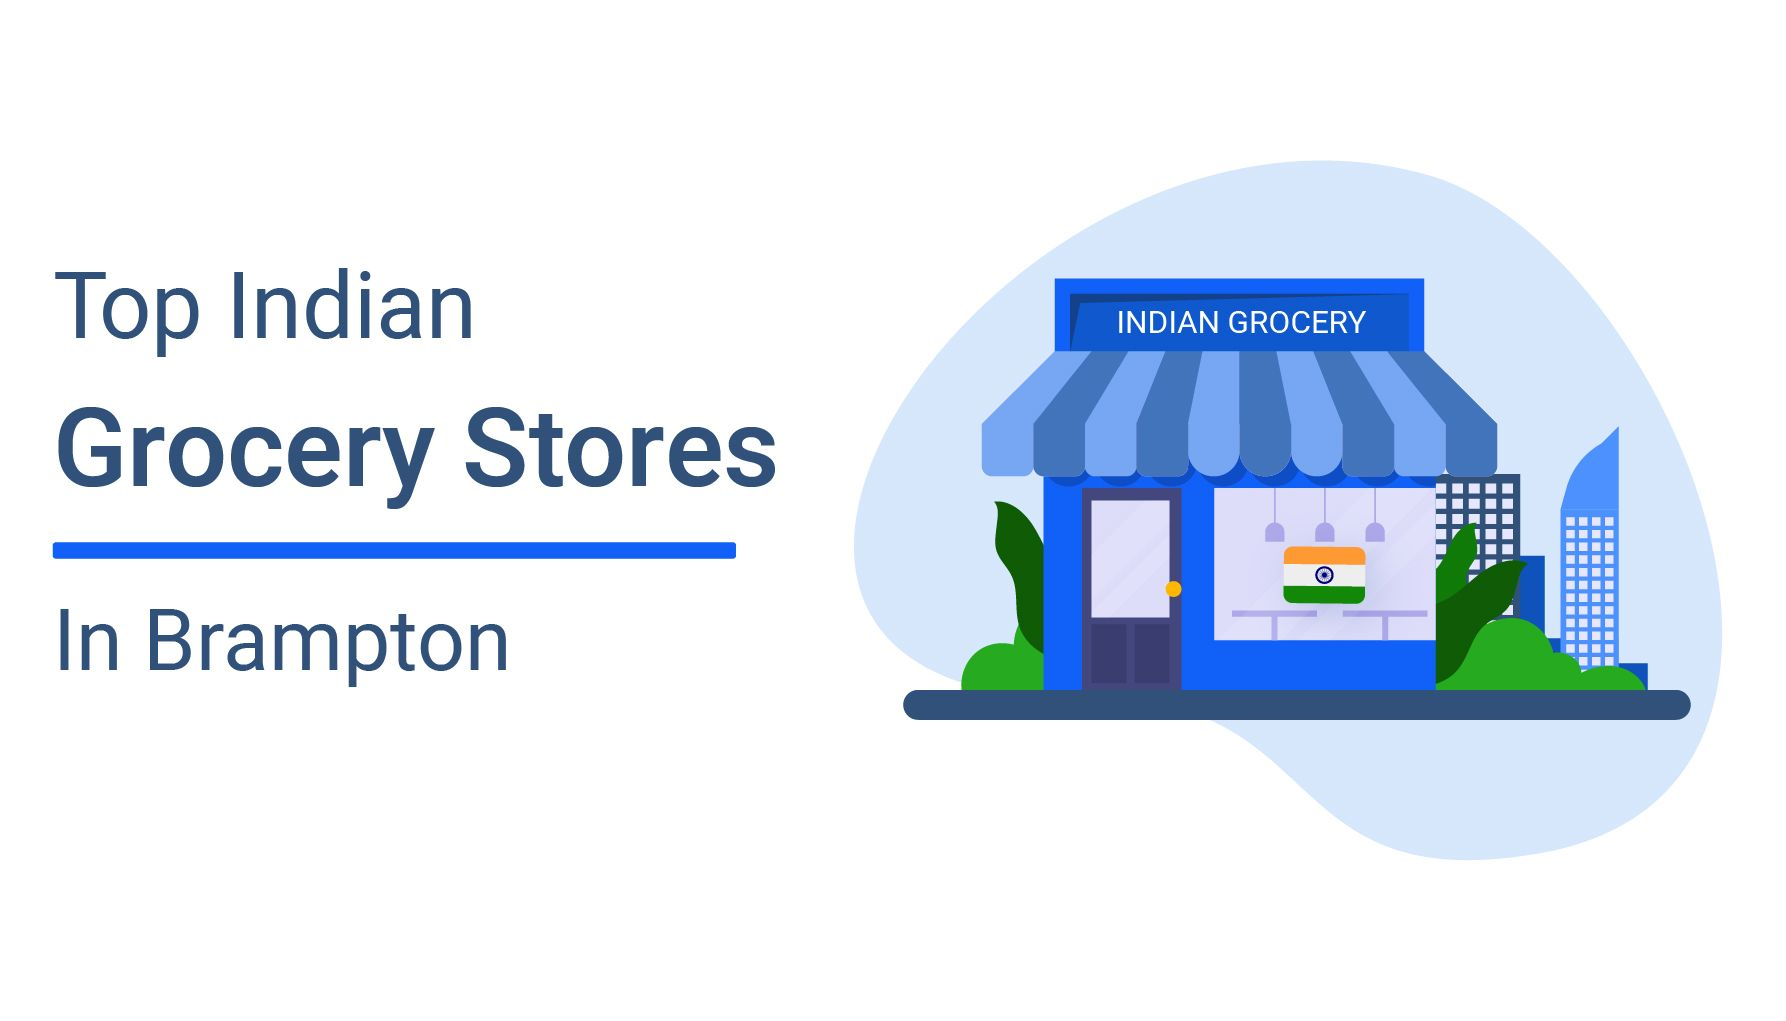 Top 10 Indian Grocery Stores in Brampton